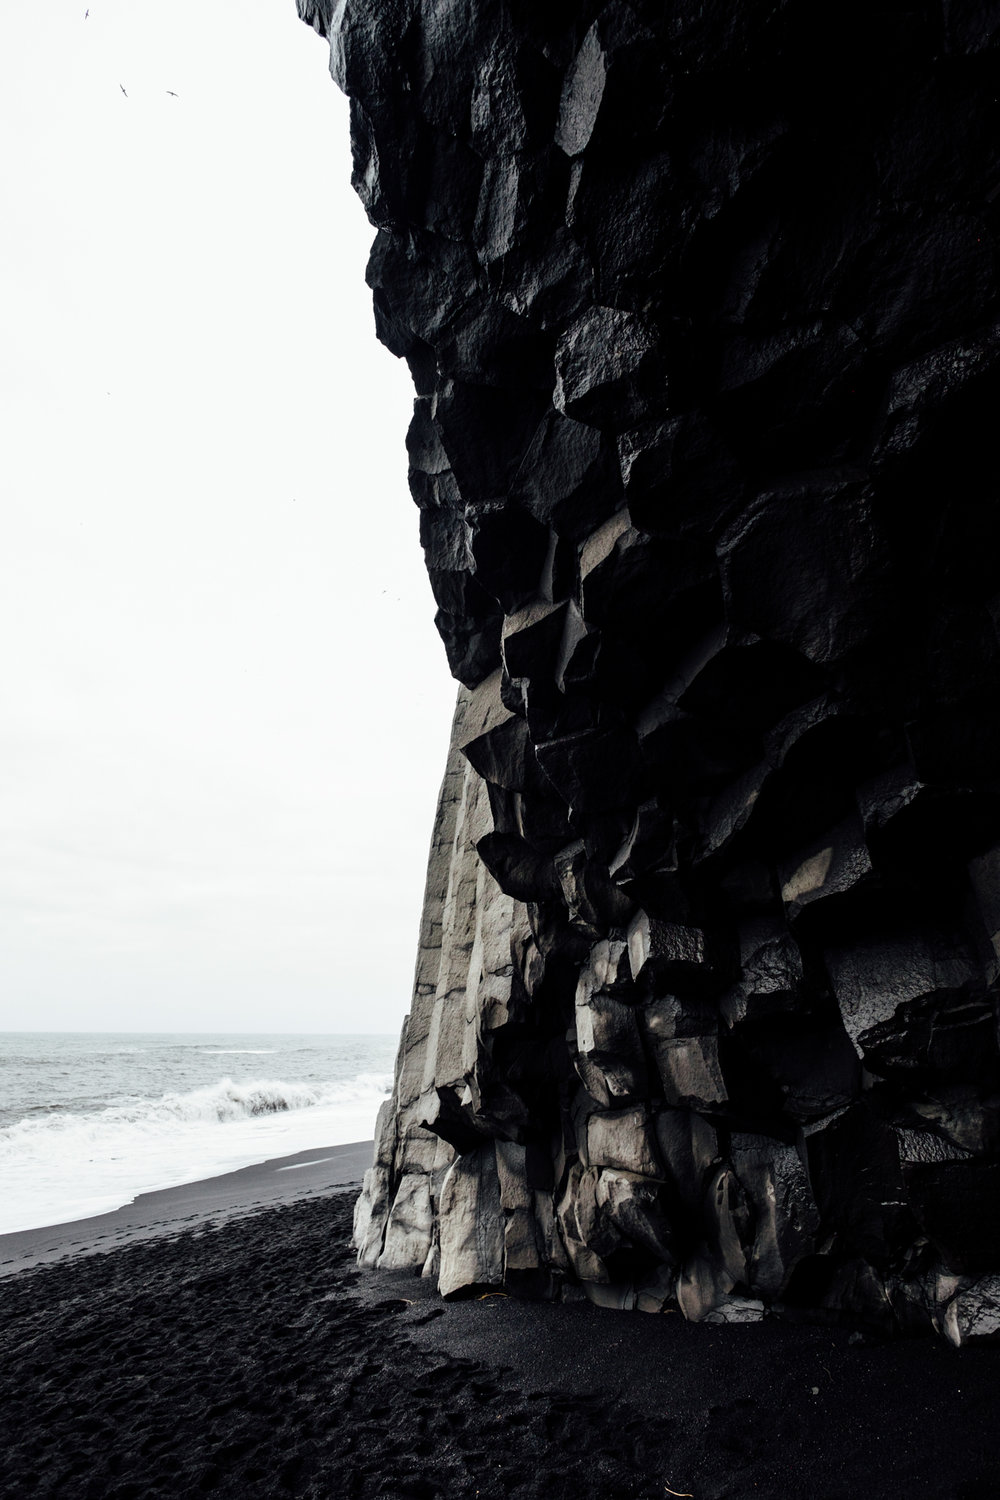 Inside the basalt cave at Reynisfjara.